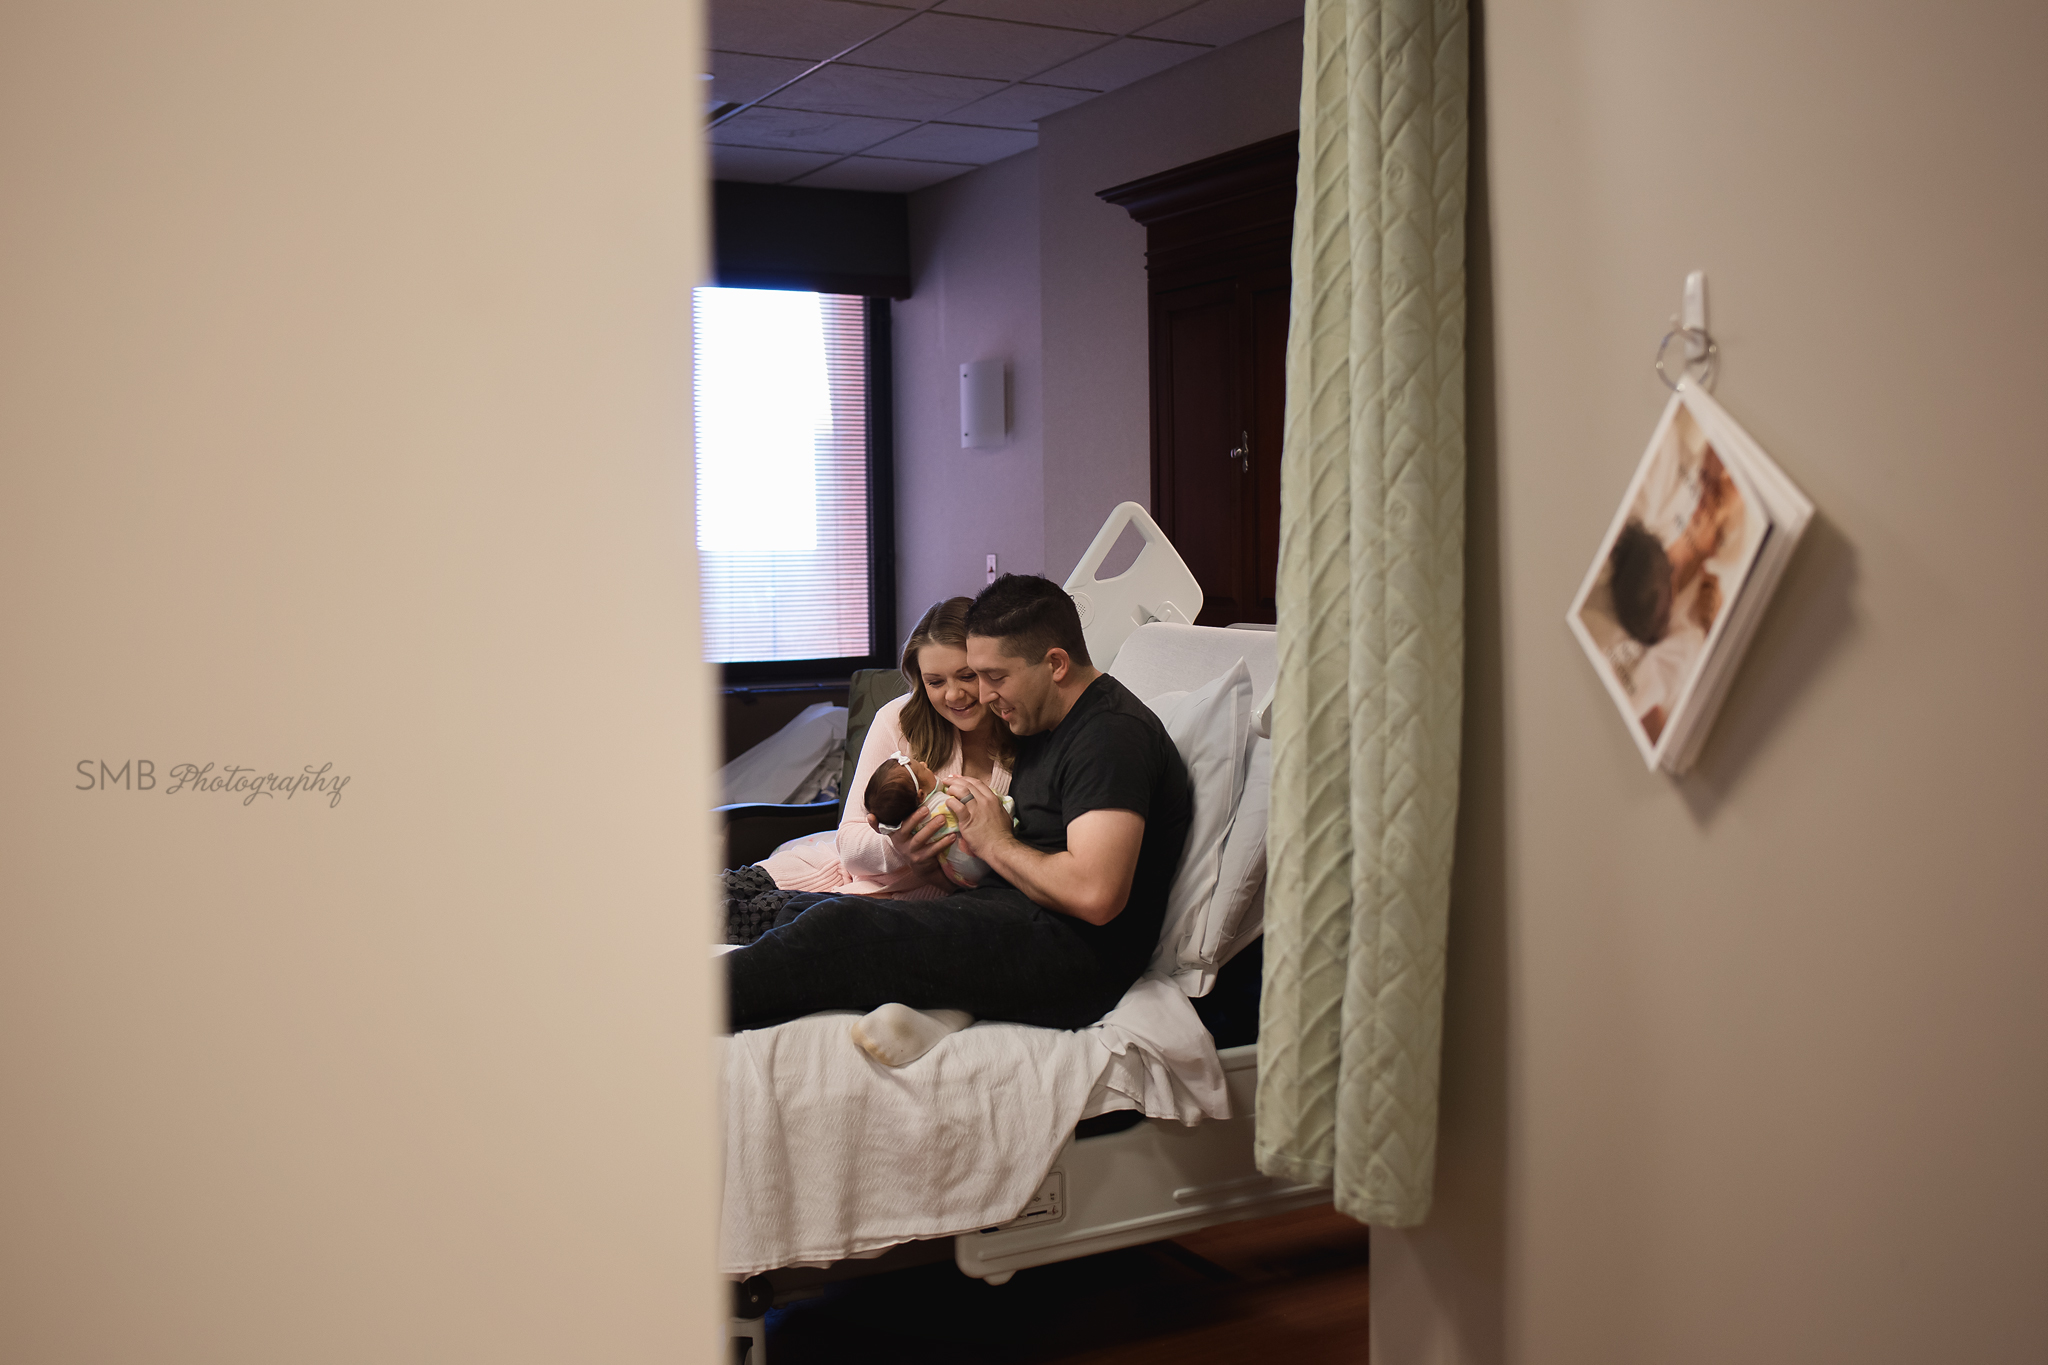 Mom, Dad and newborn baby girl in hospital bed